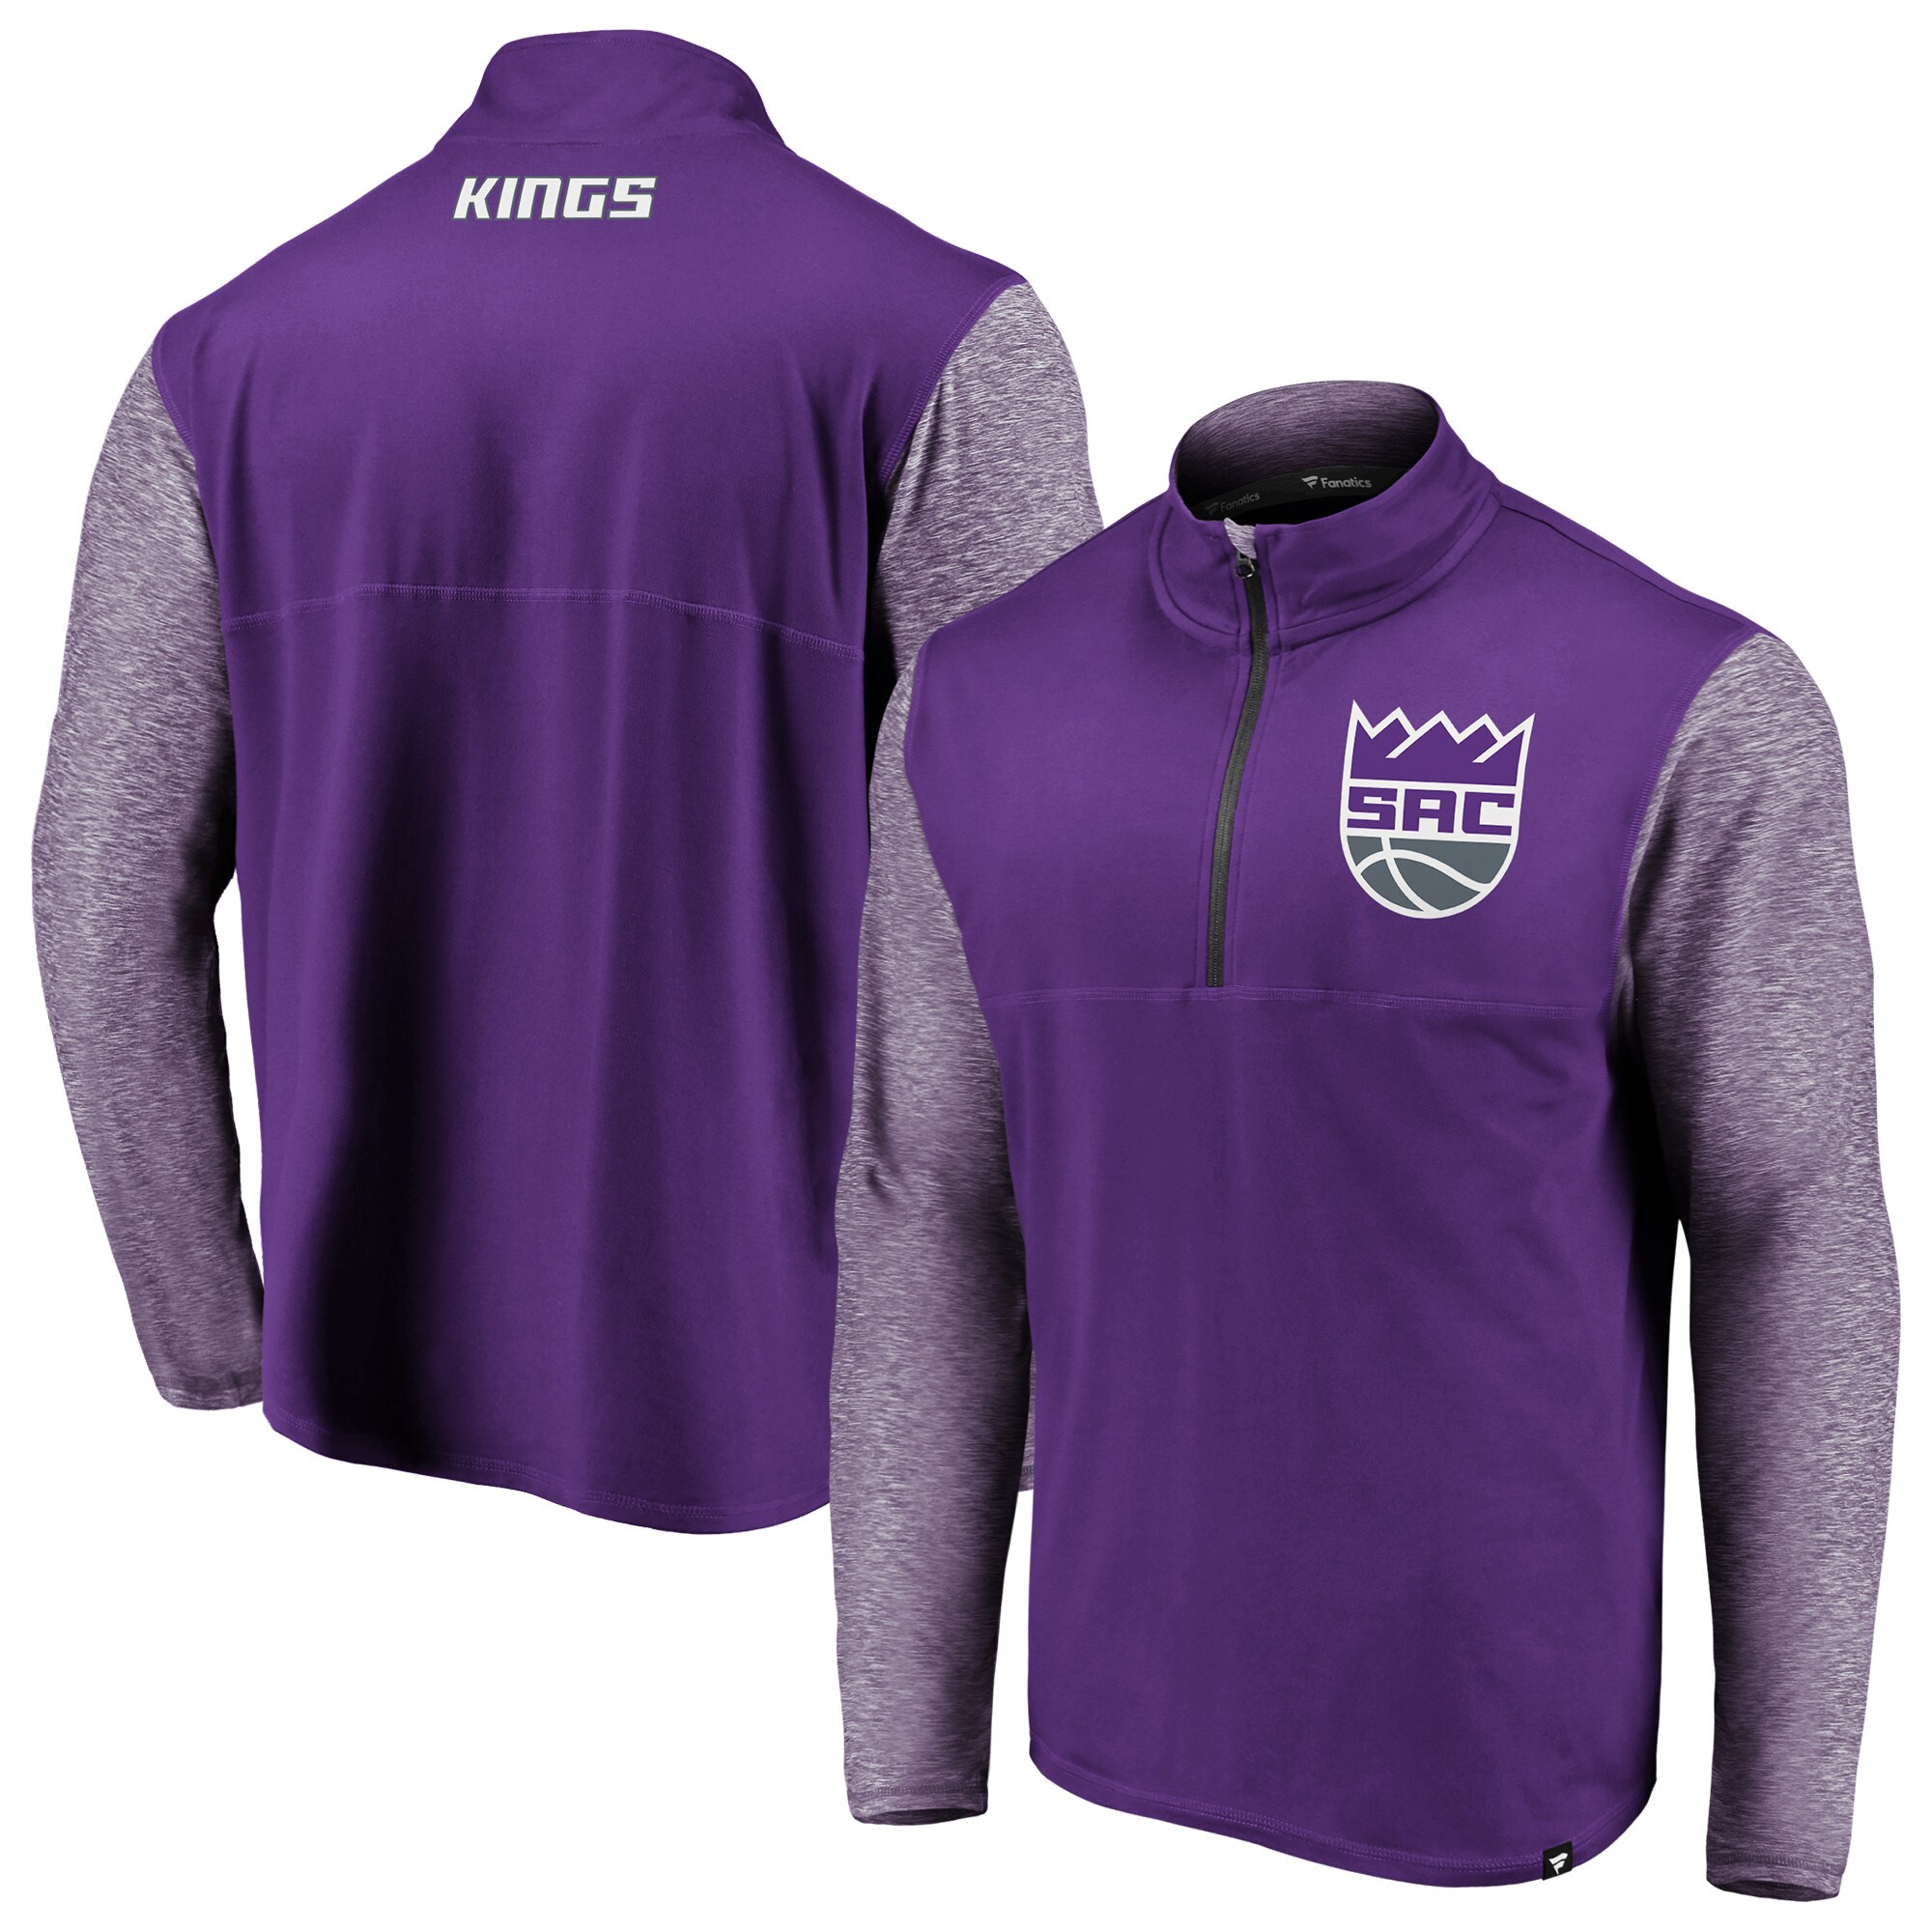 Sacramento Kings Fanatics Branded Made to Move Static Performance Quarter-Zip Pullover Jacket - Purple/Heathered Purple